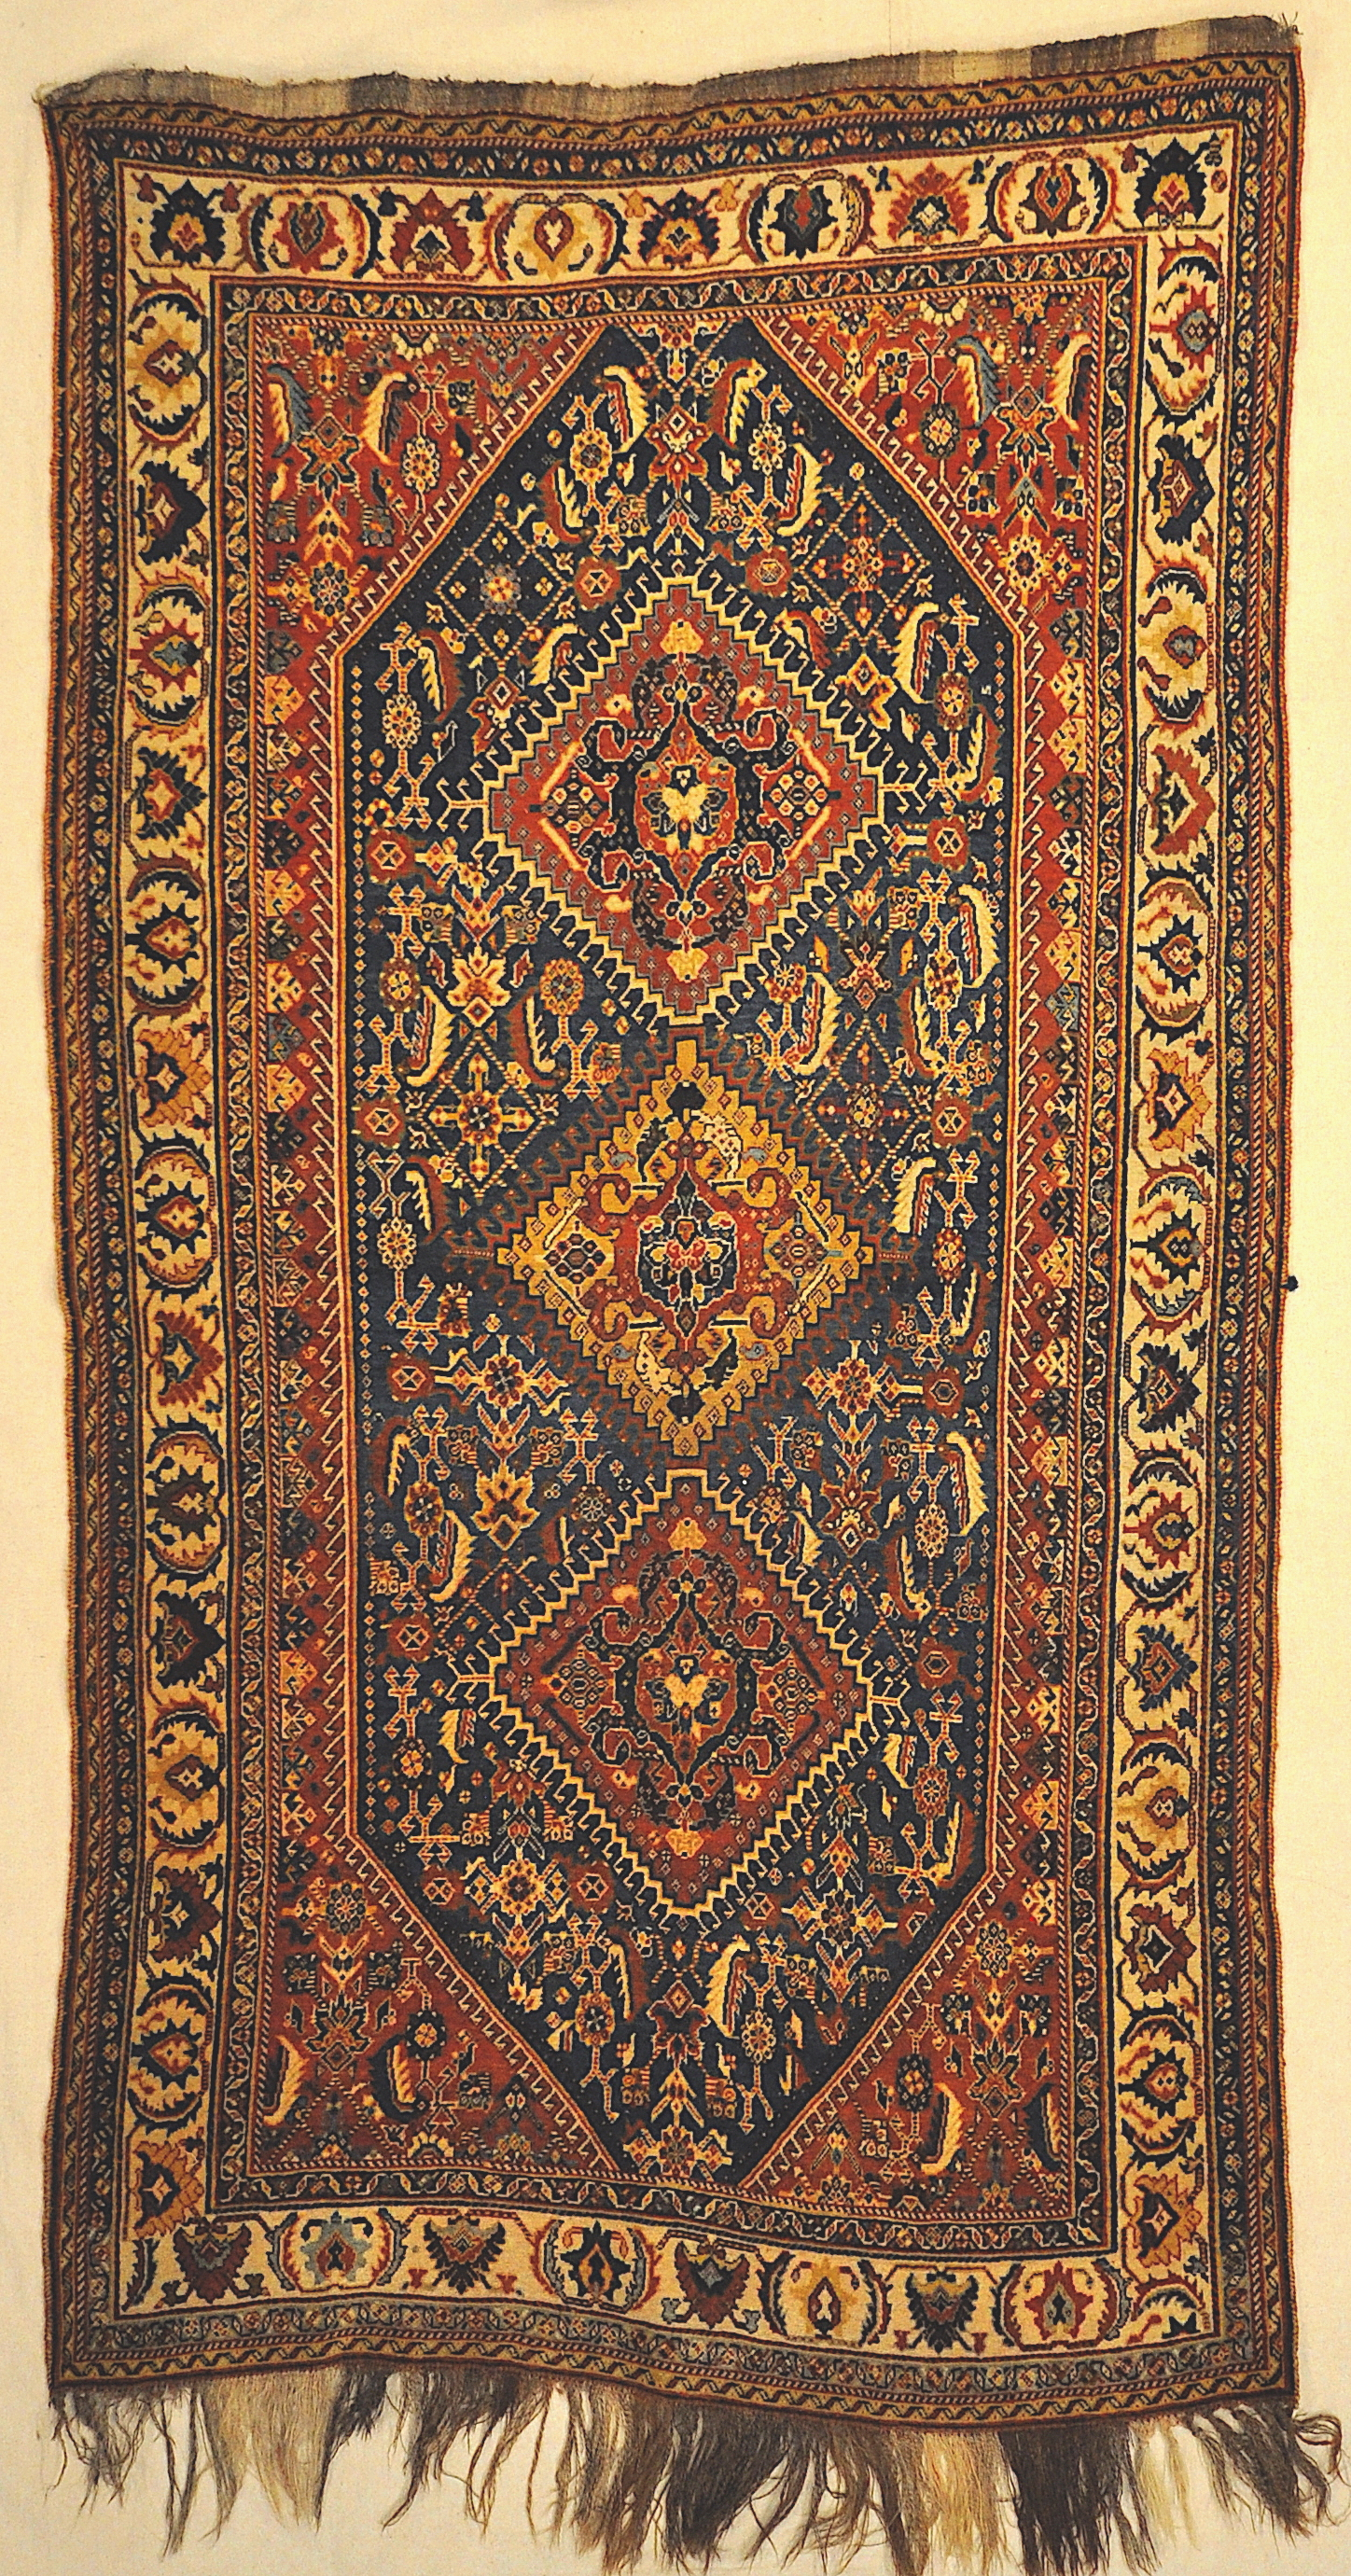 Antique Persian Qashqai Rug in Perfect Condition Genuine Authentic Woven Carpet Art Santa Barbara Design Center Rugs and More